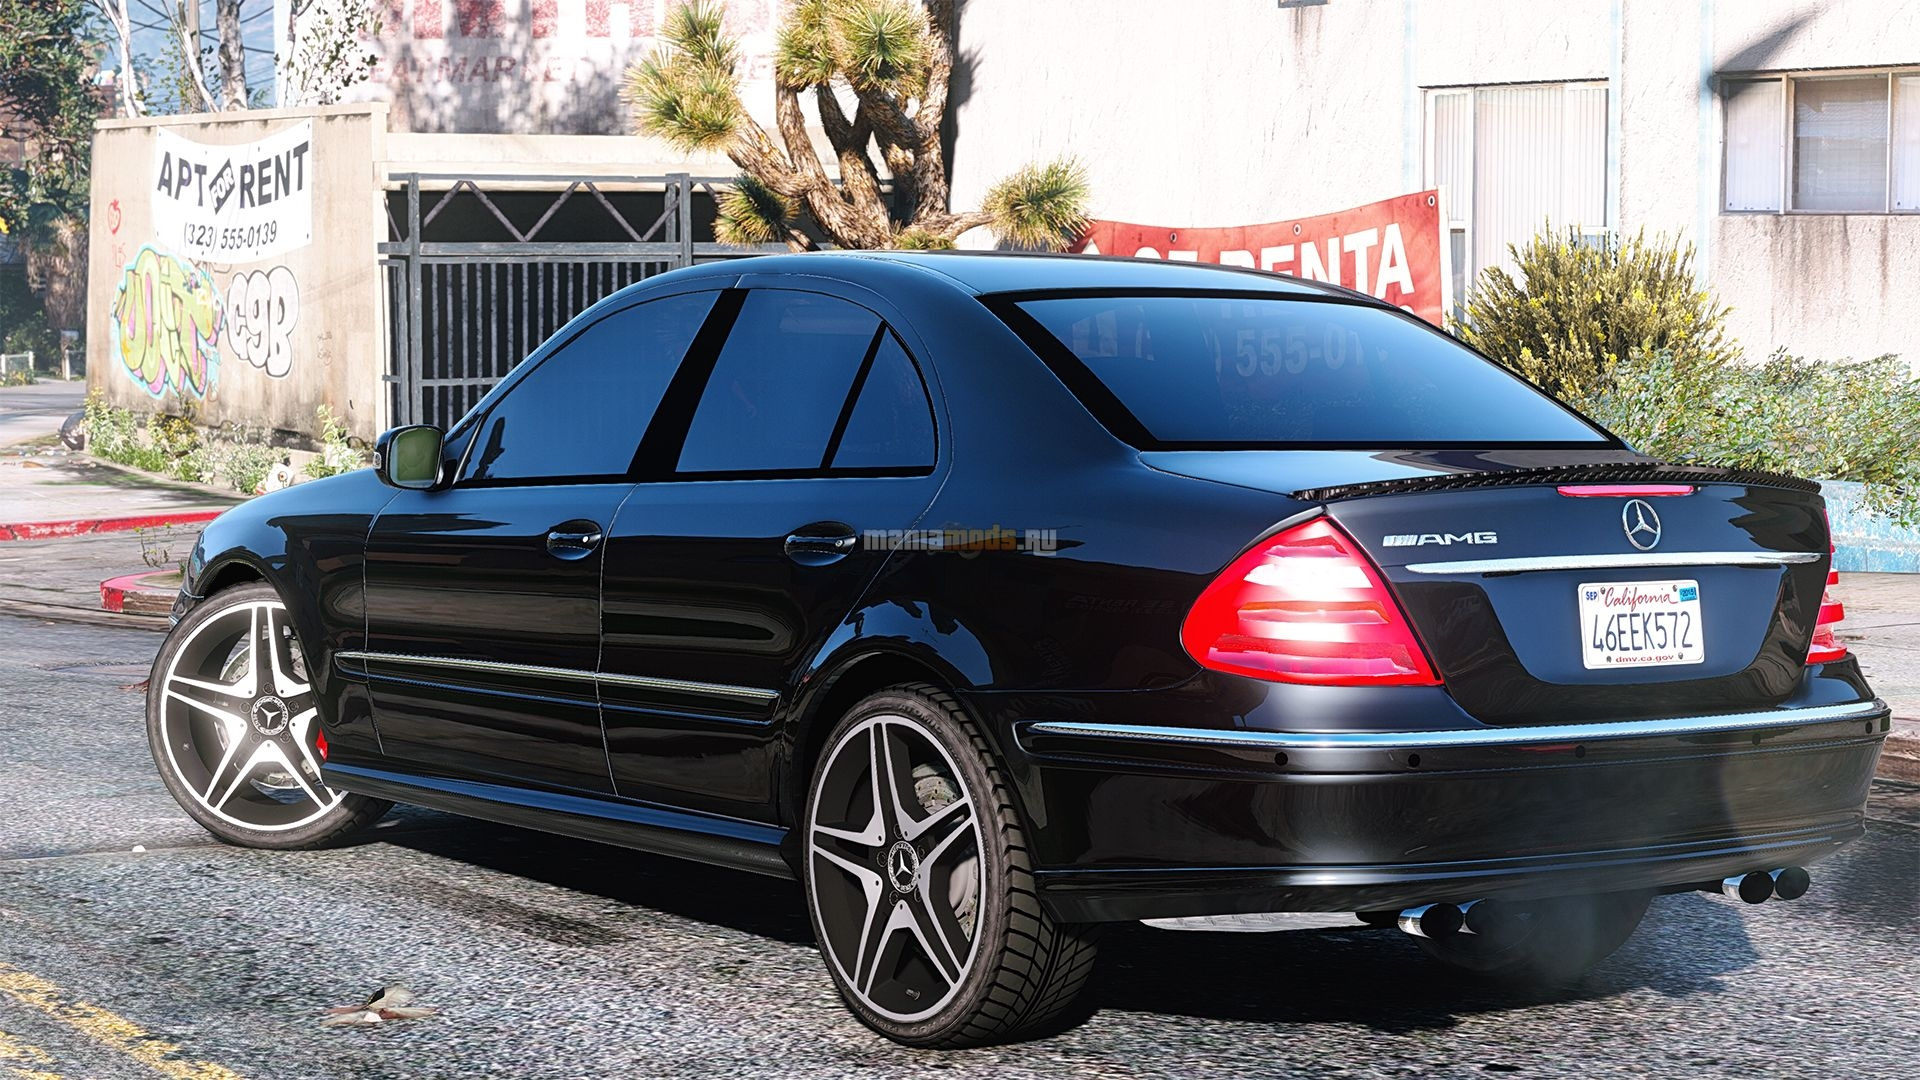 Mercedes benz e320 w211 amg gta5 for Mercedes benz e amg